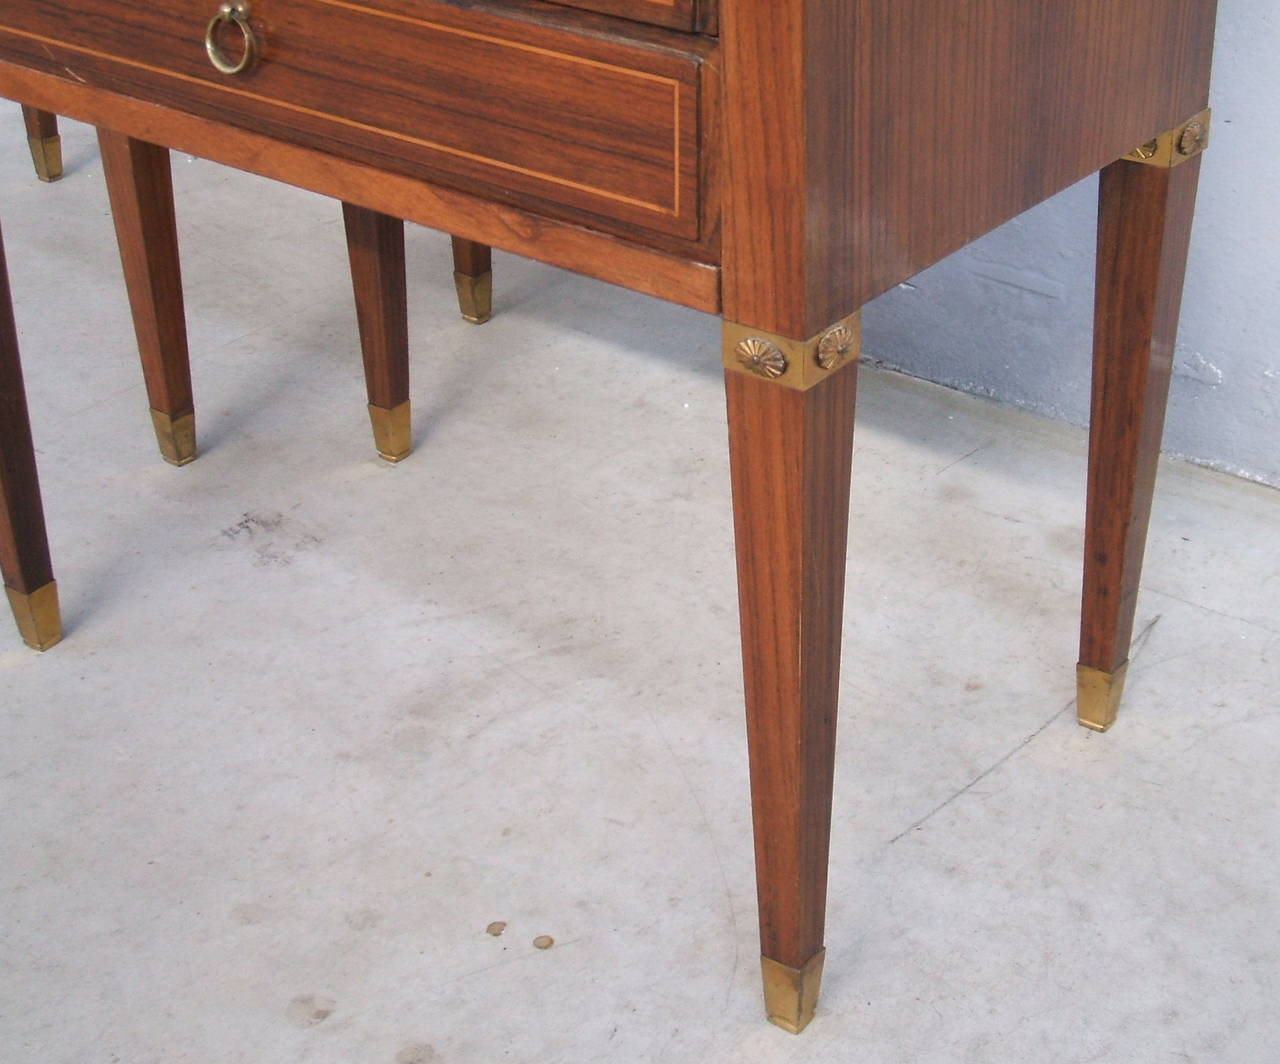 Pair of Side Tables in the Style of Paolo Buffa In Excellent Condition For Sale In Carpaneto Piacentino, Italy